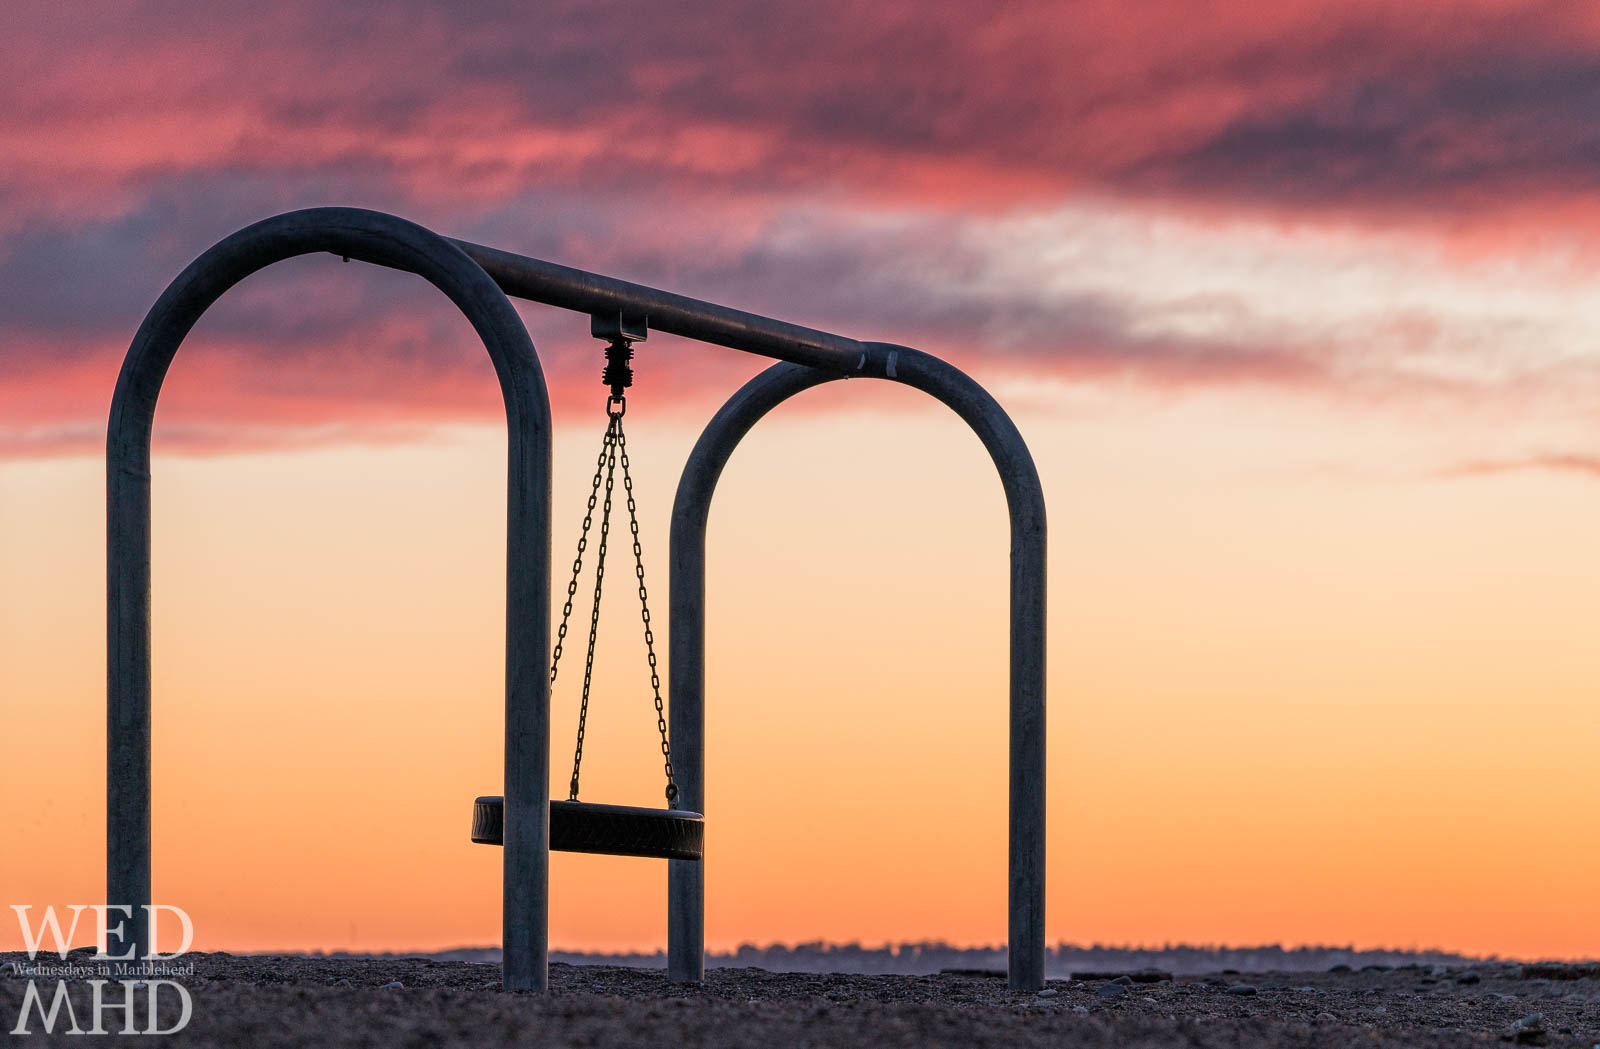 A tire swing stands idle under the sunset sky calling out to kids it's time to play